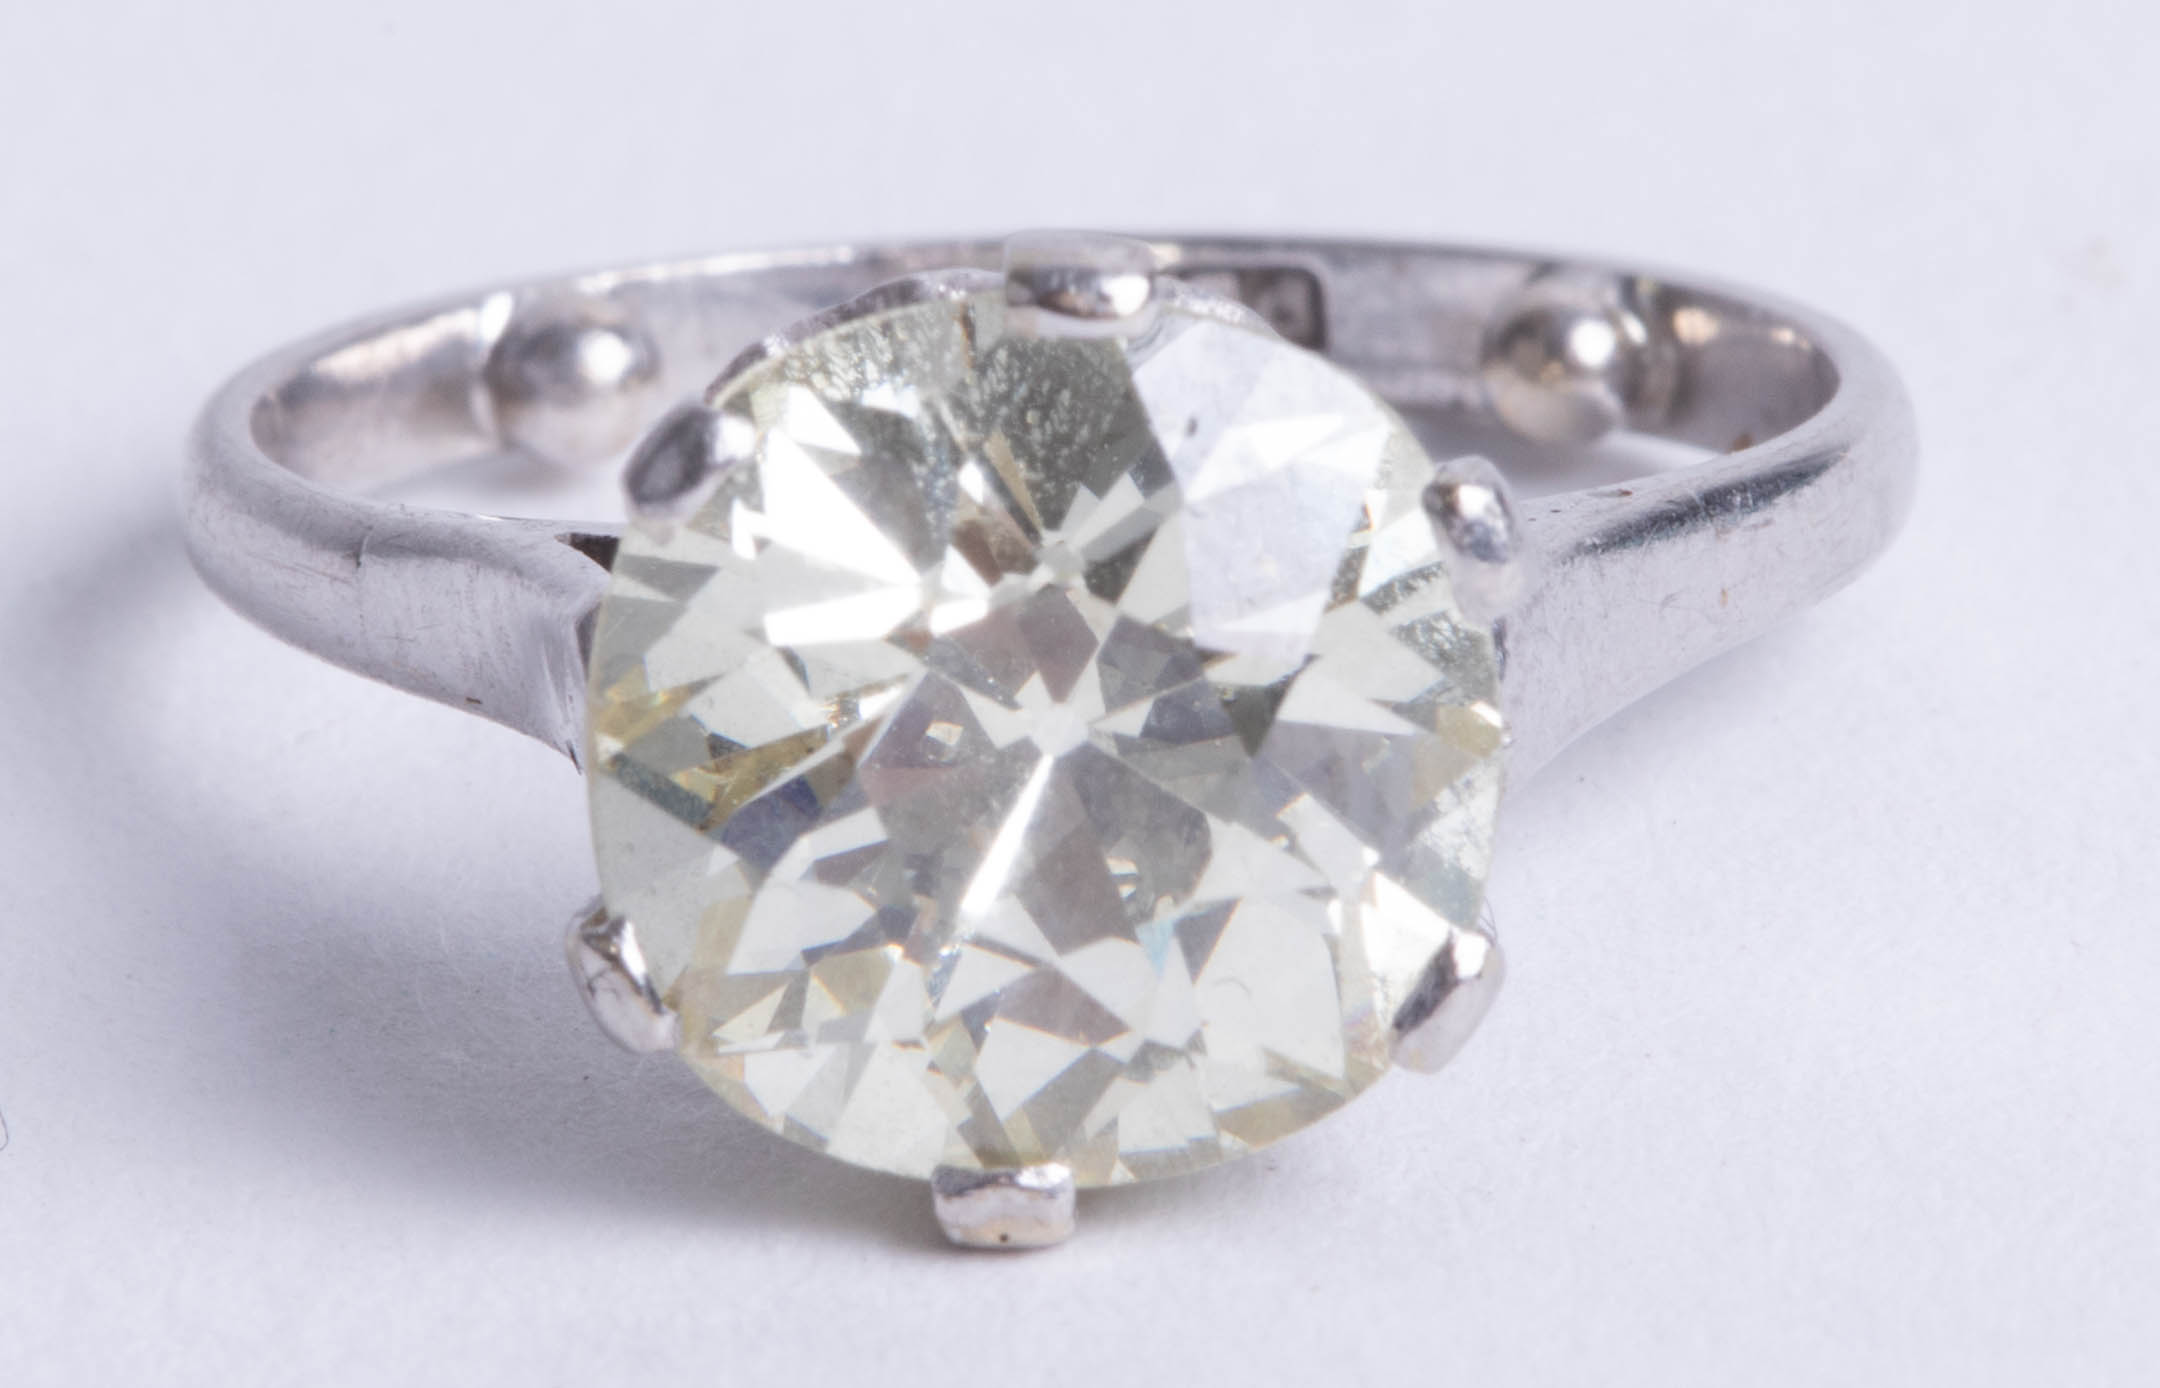 Lot 051 - A large diamond solitaire ring, approx 3.56 carats, cushion shaped and old brilliant cut diamond,